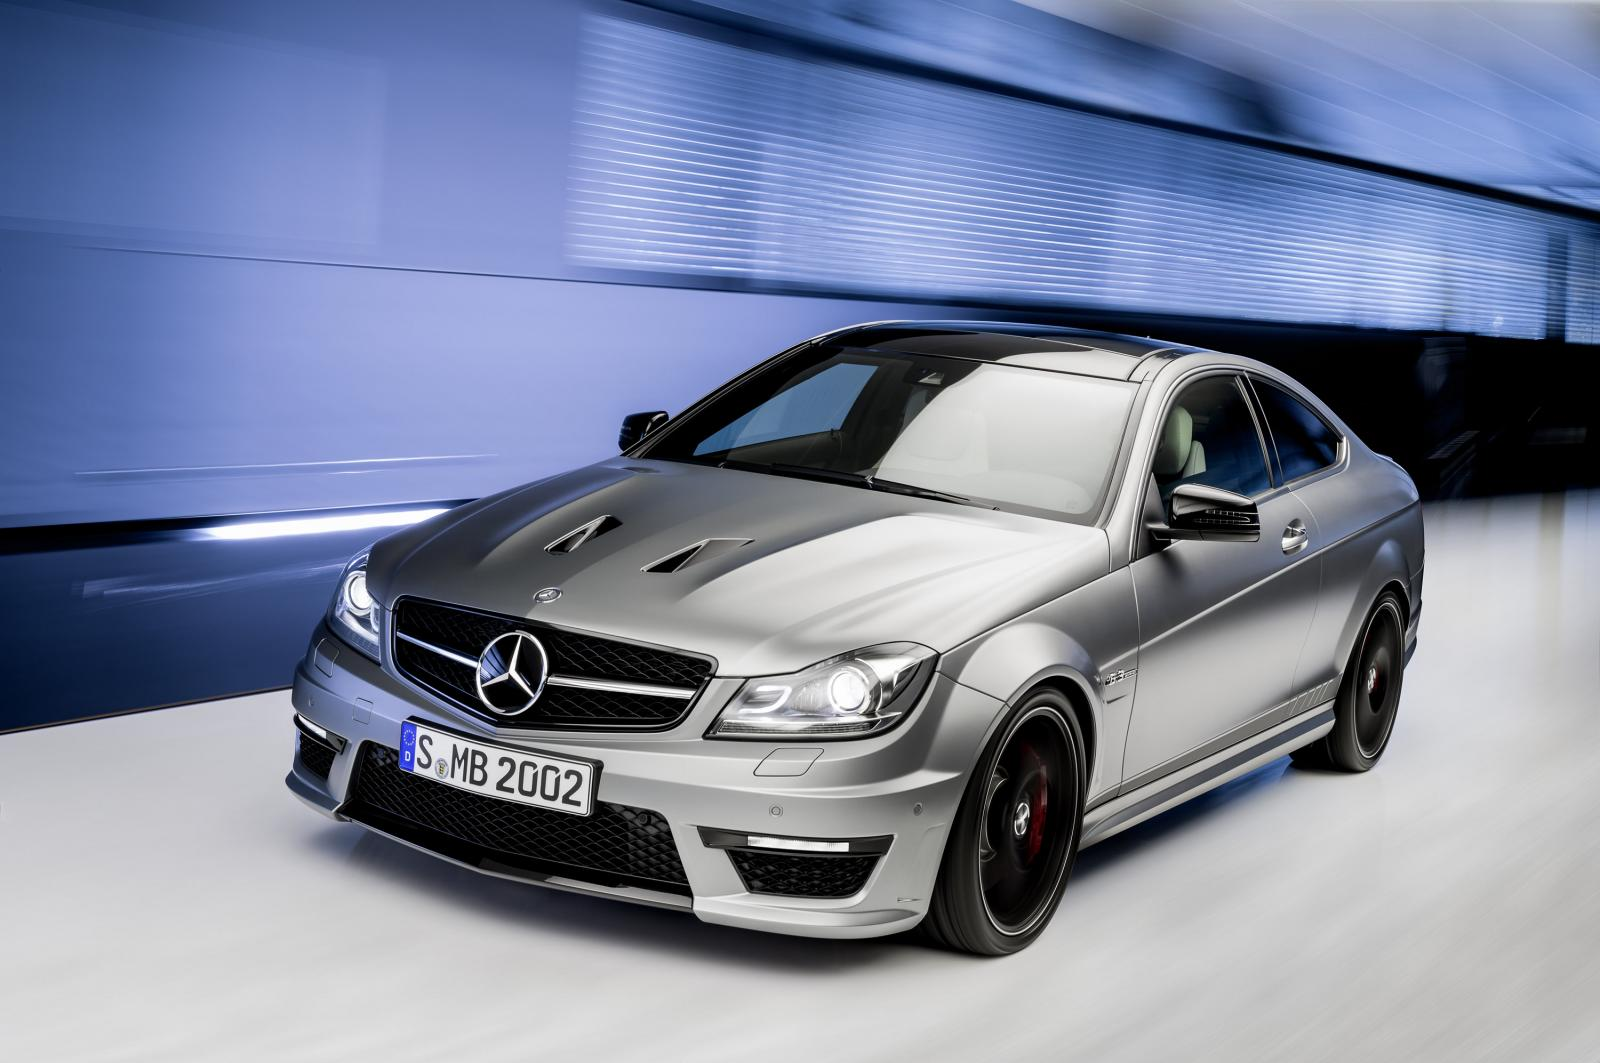 2014 mercedes benz c63 amg edition 507 released video for C63 mercedes benz